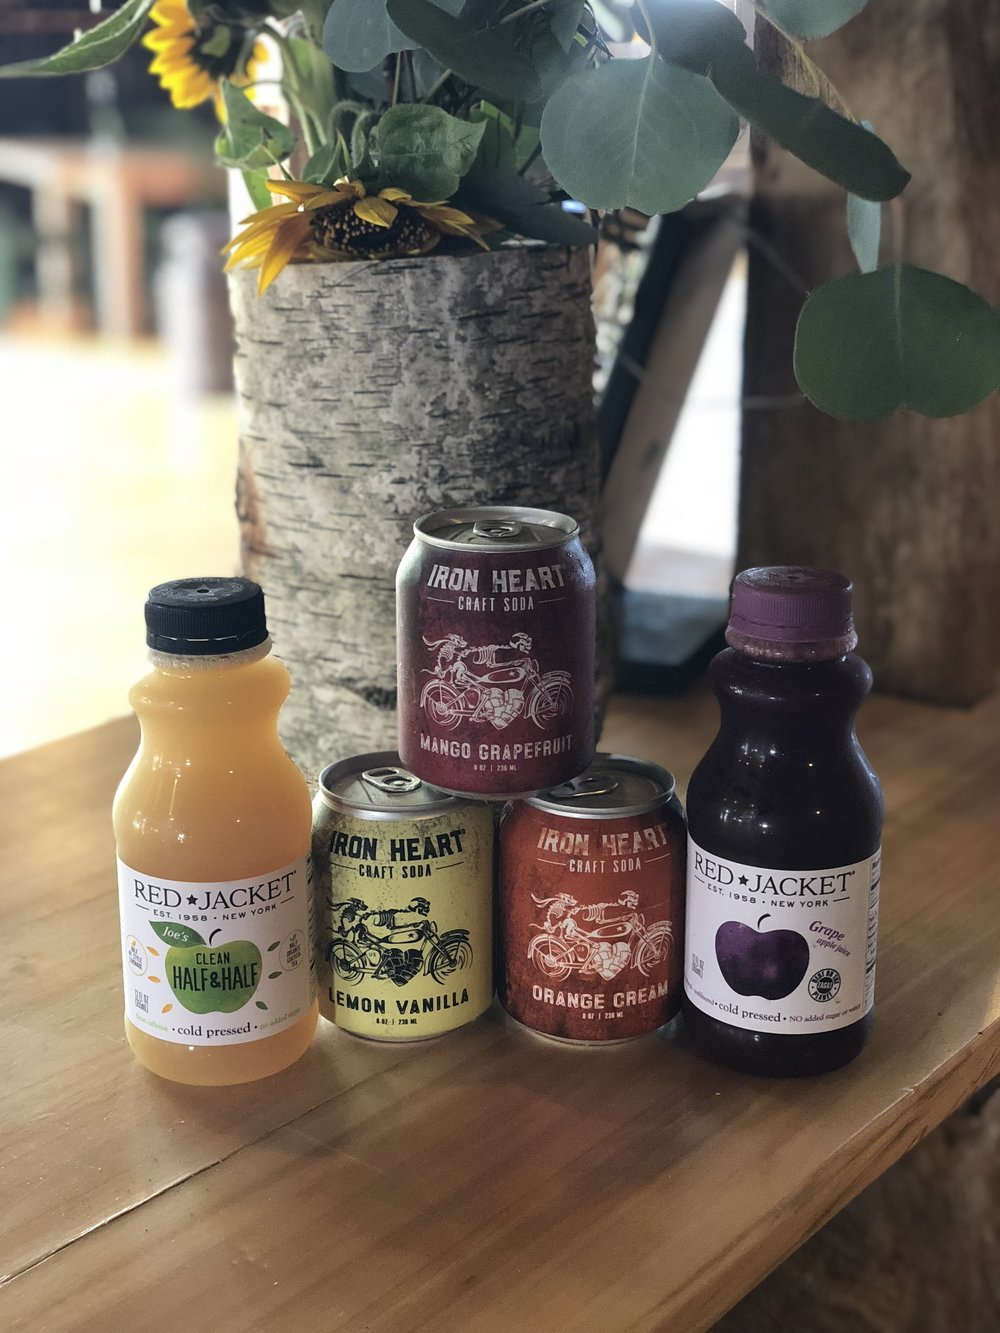 Picture of local juices and sodas served